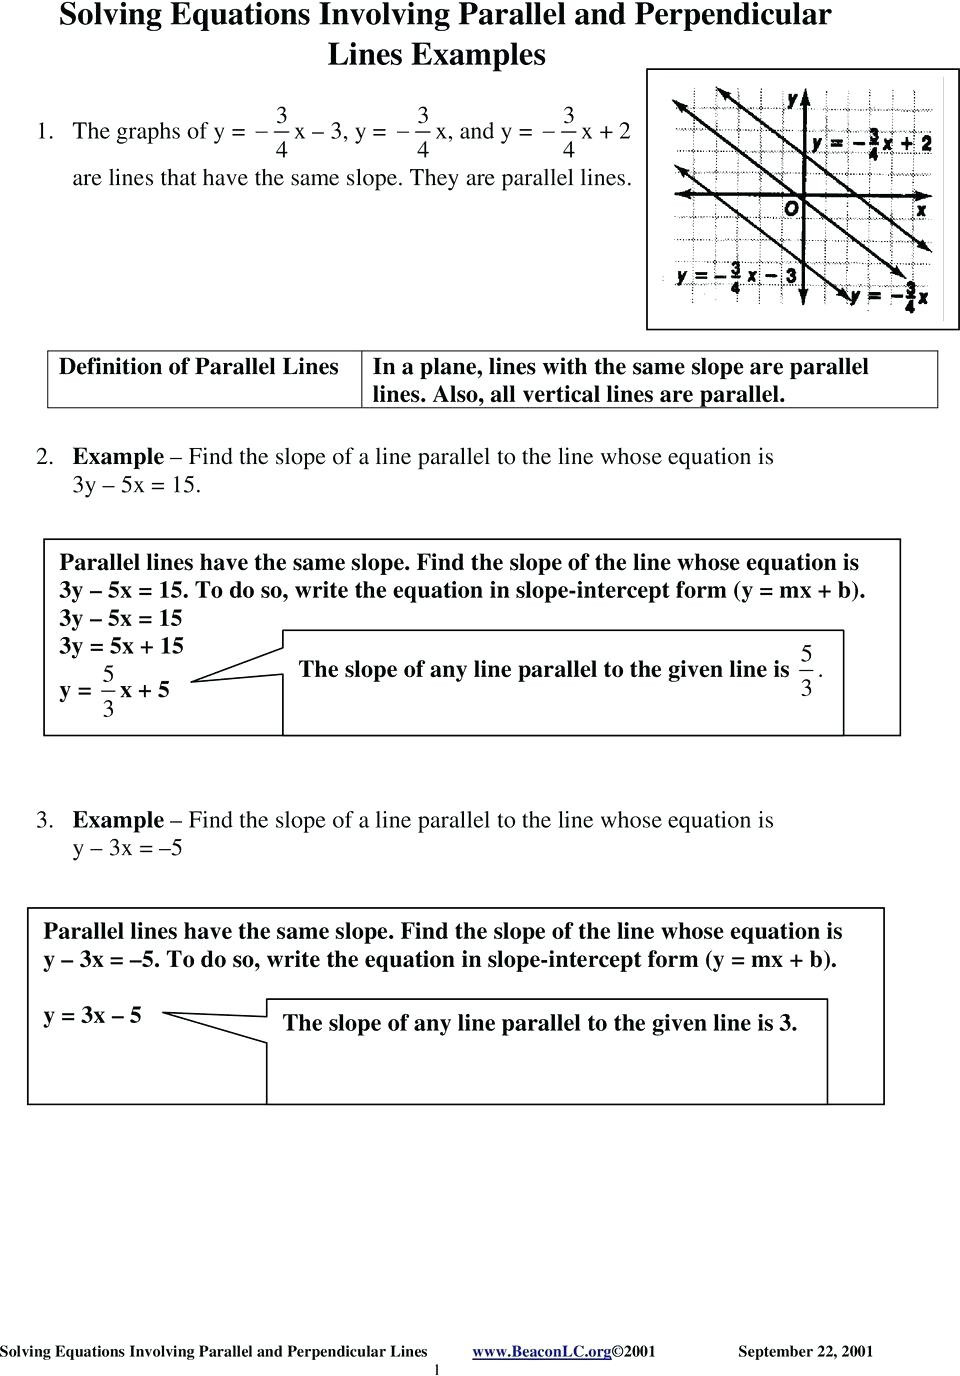 Parallel and Perpendicular Lines Worksheet Parallel and Perpendicular Equations Worksheet